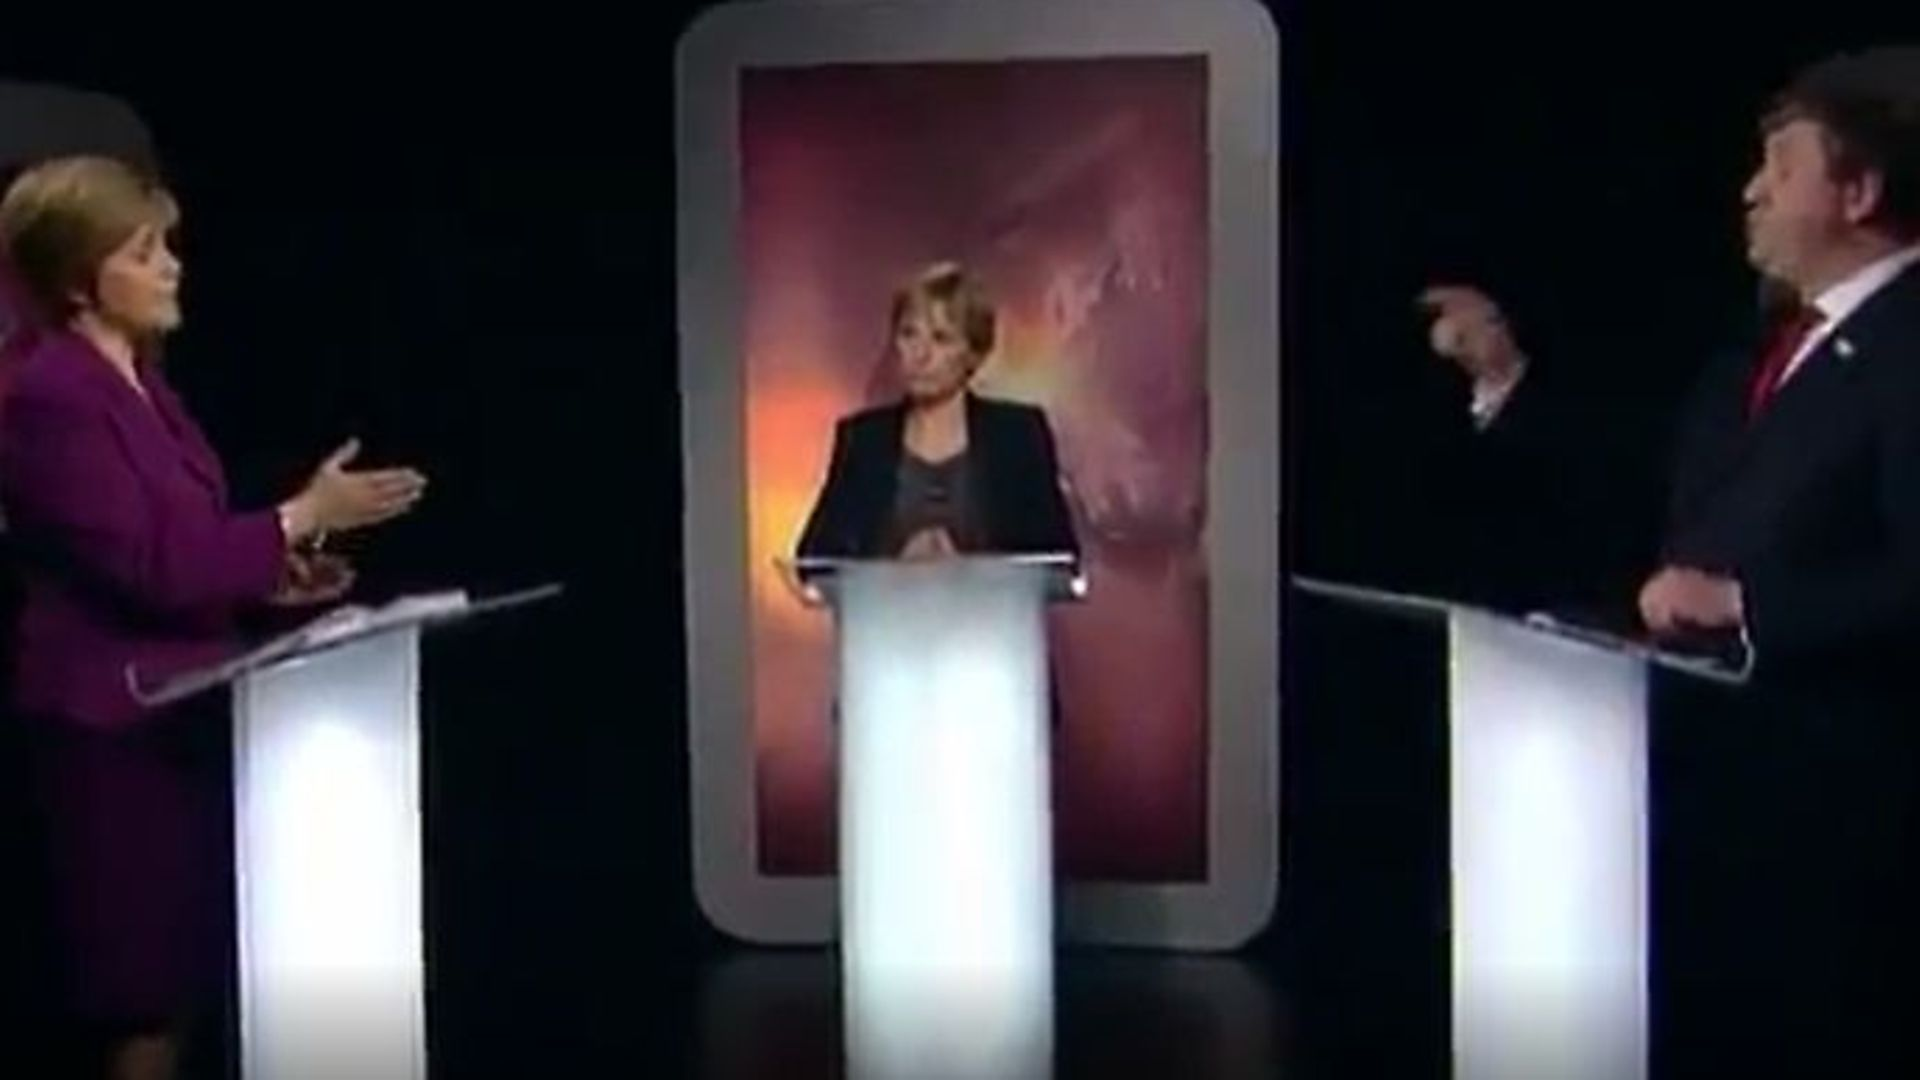 Nicola Sturgeon and Alistair Carmichael during a 2014 debate on Scottish independence - Credit: Twitter